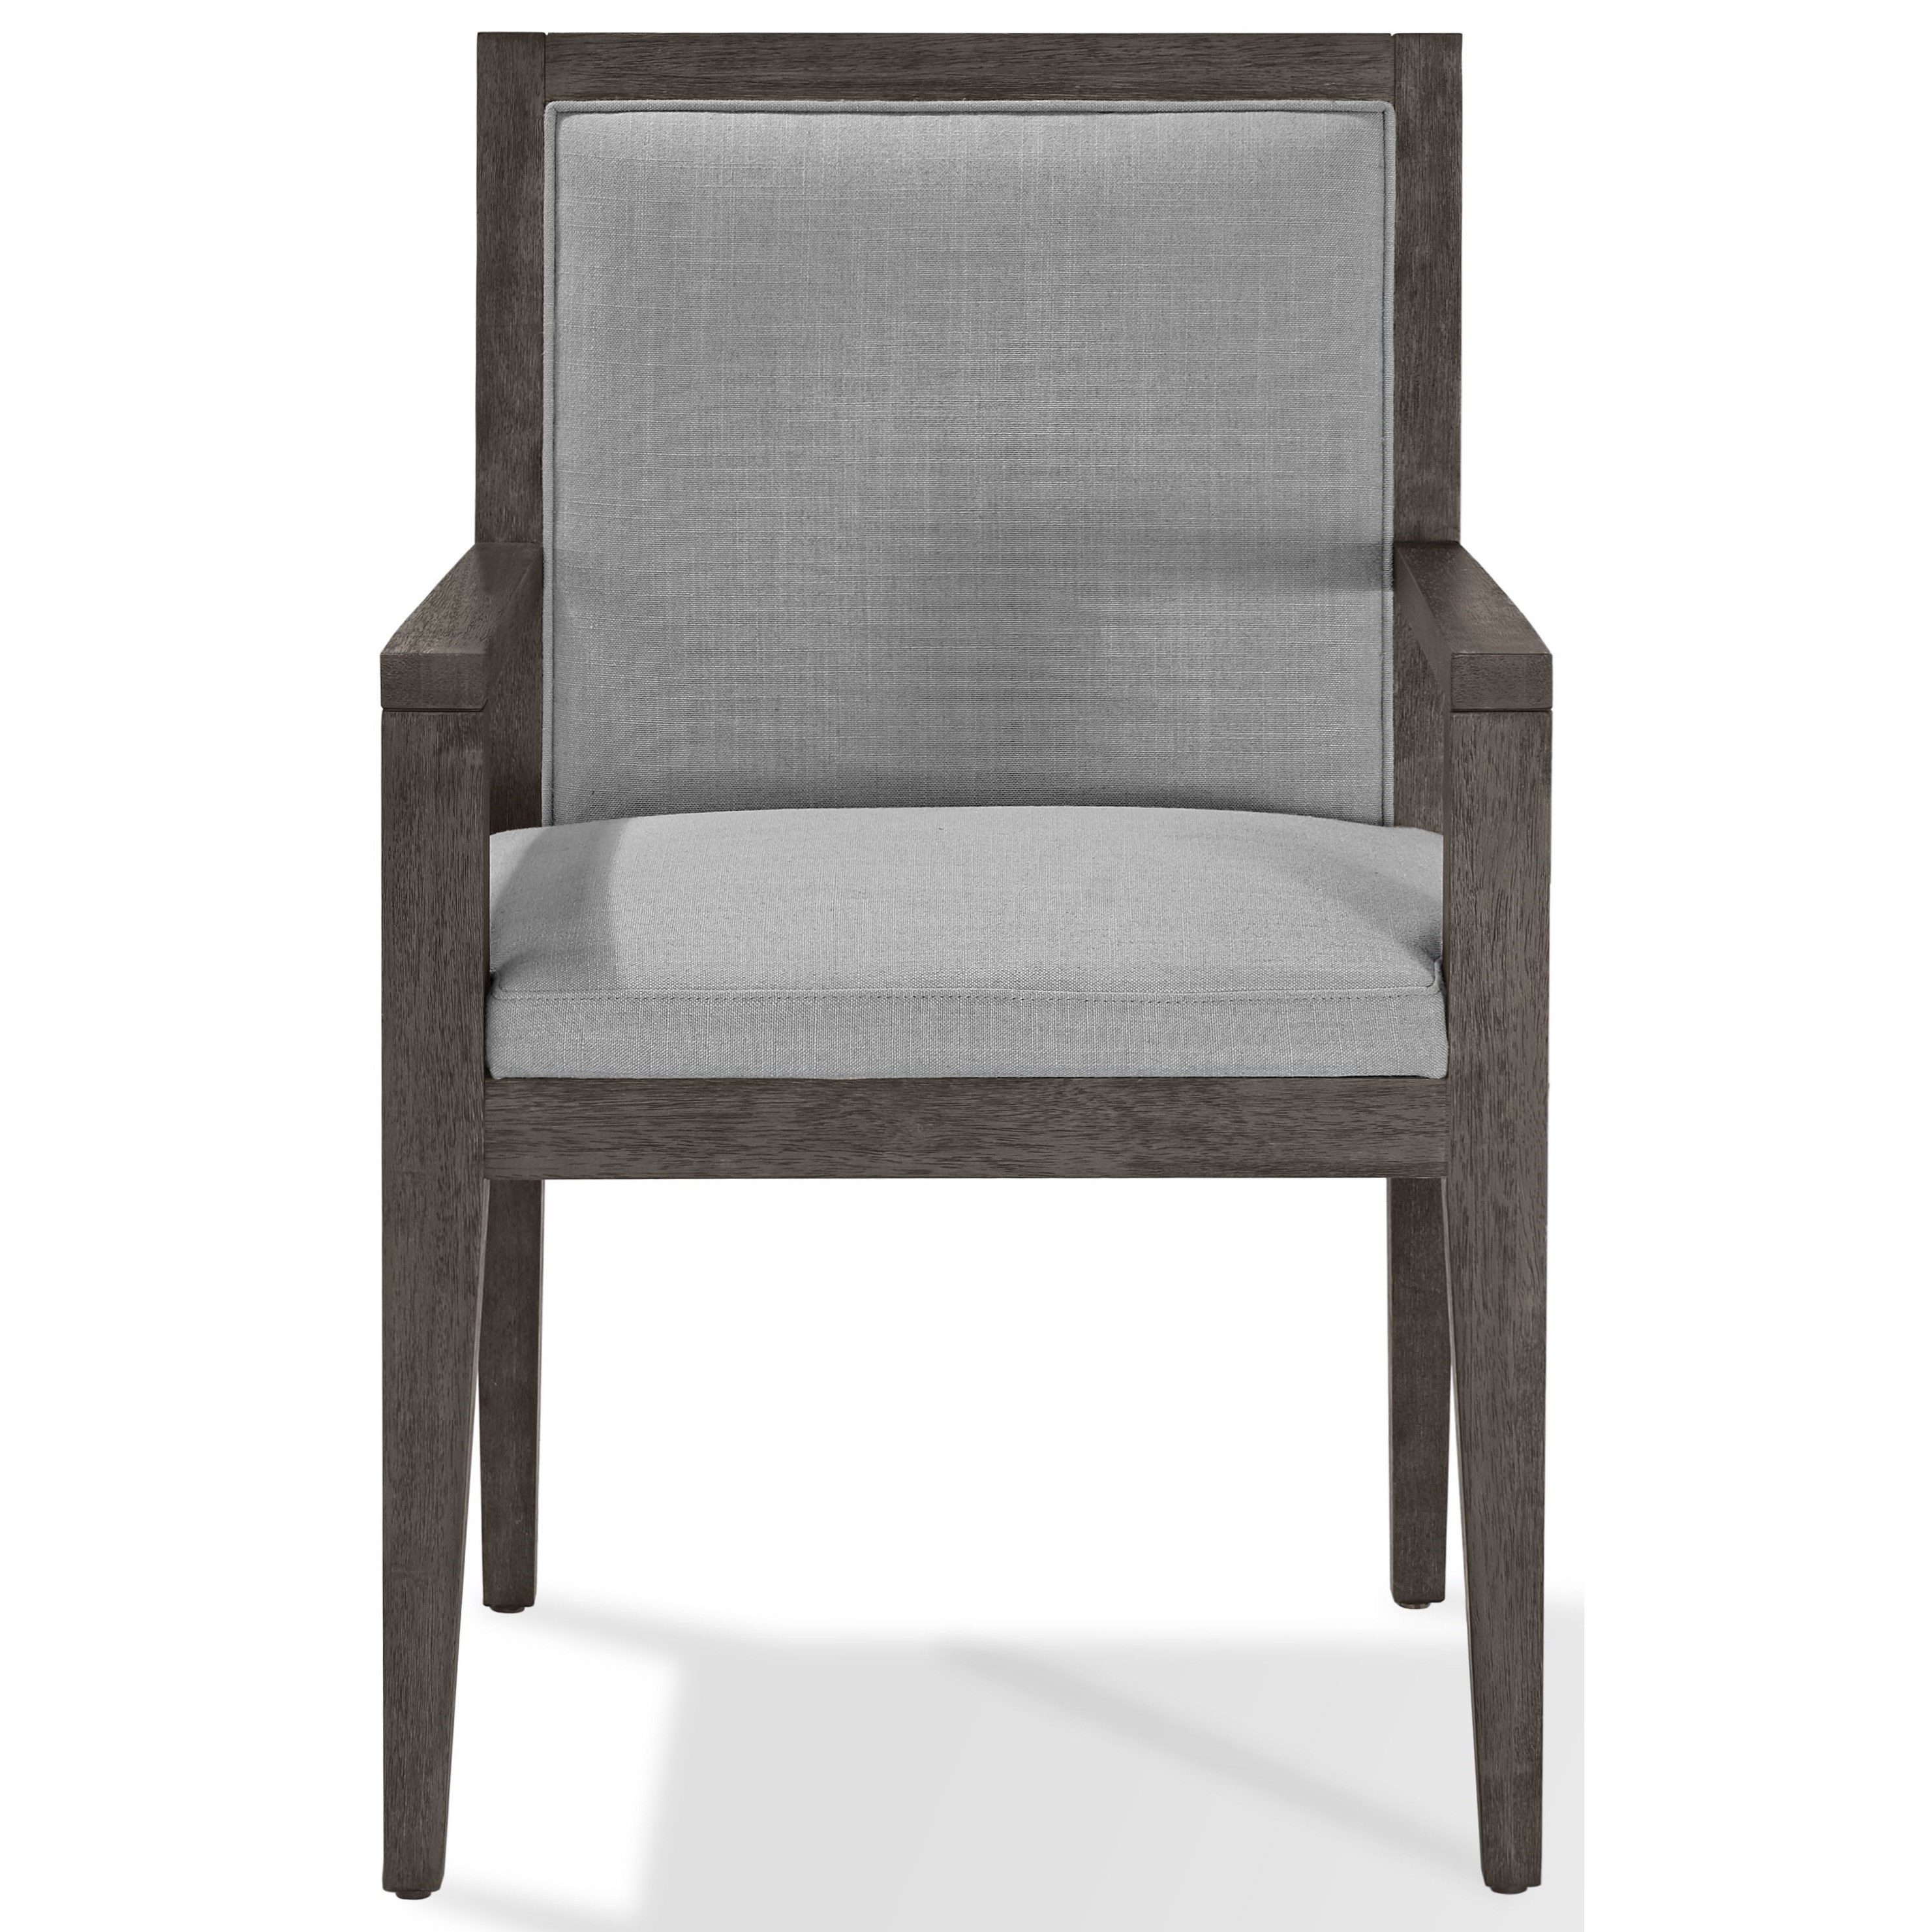 Wood Framed Arm Chair in French Roast